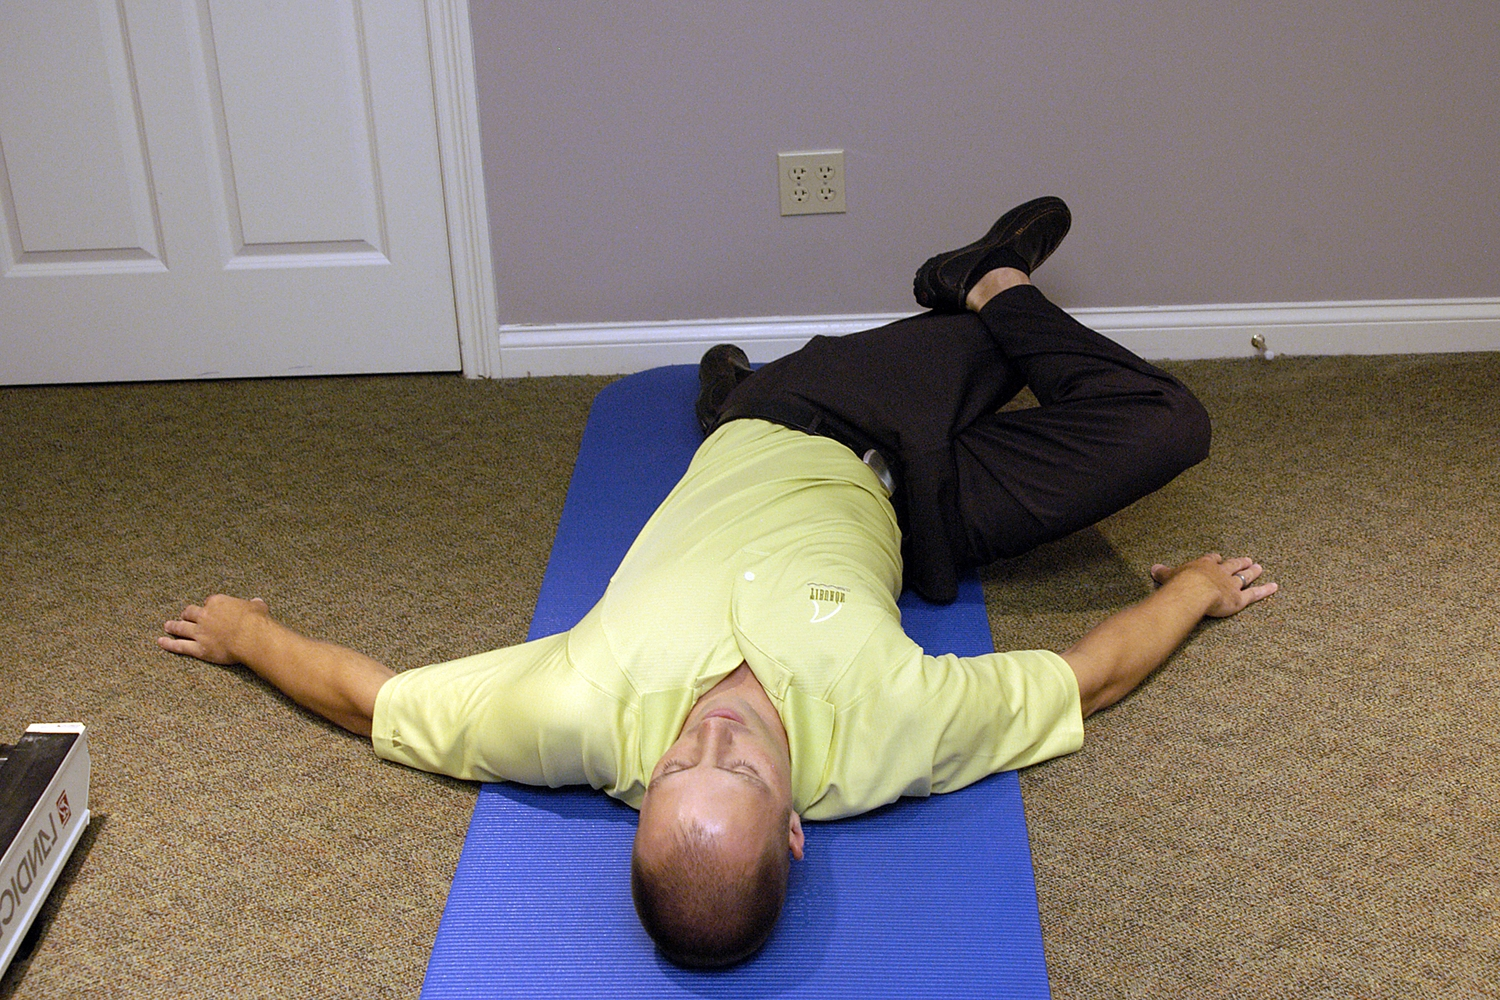 2.Rotate legs right, right foot goes on top of left knee, hold 10 seconds